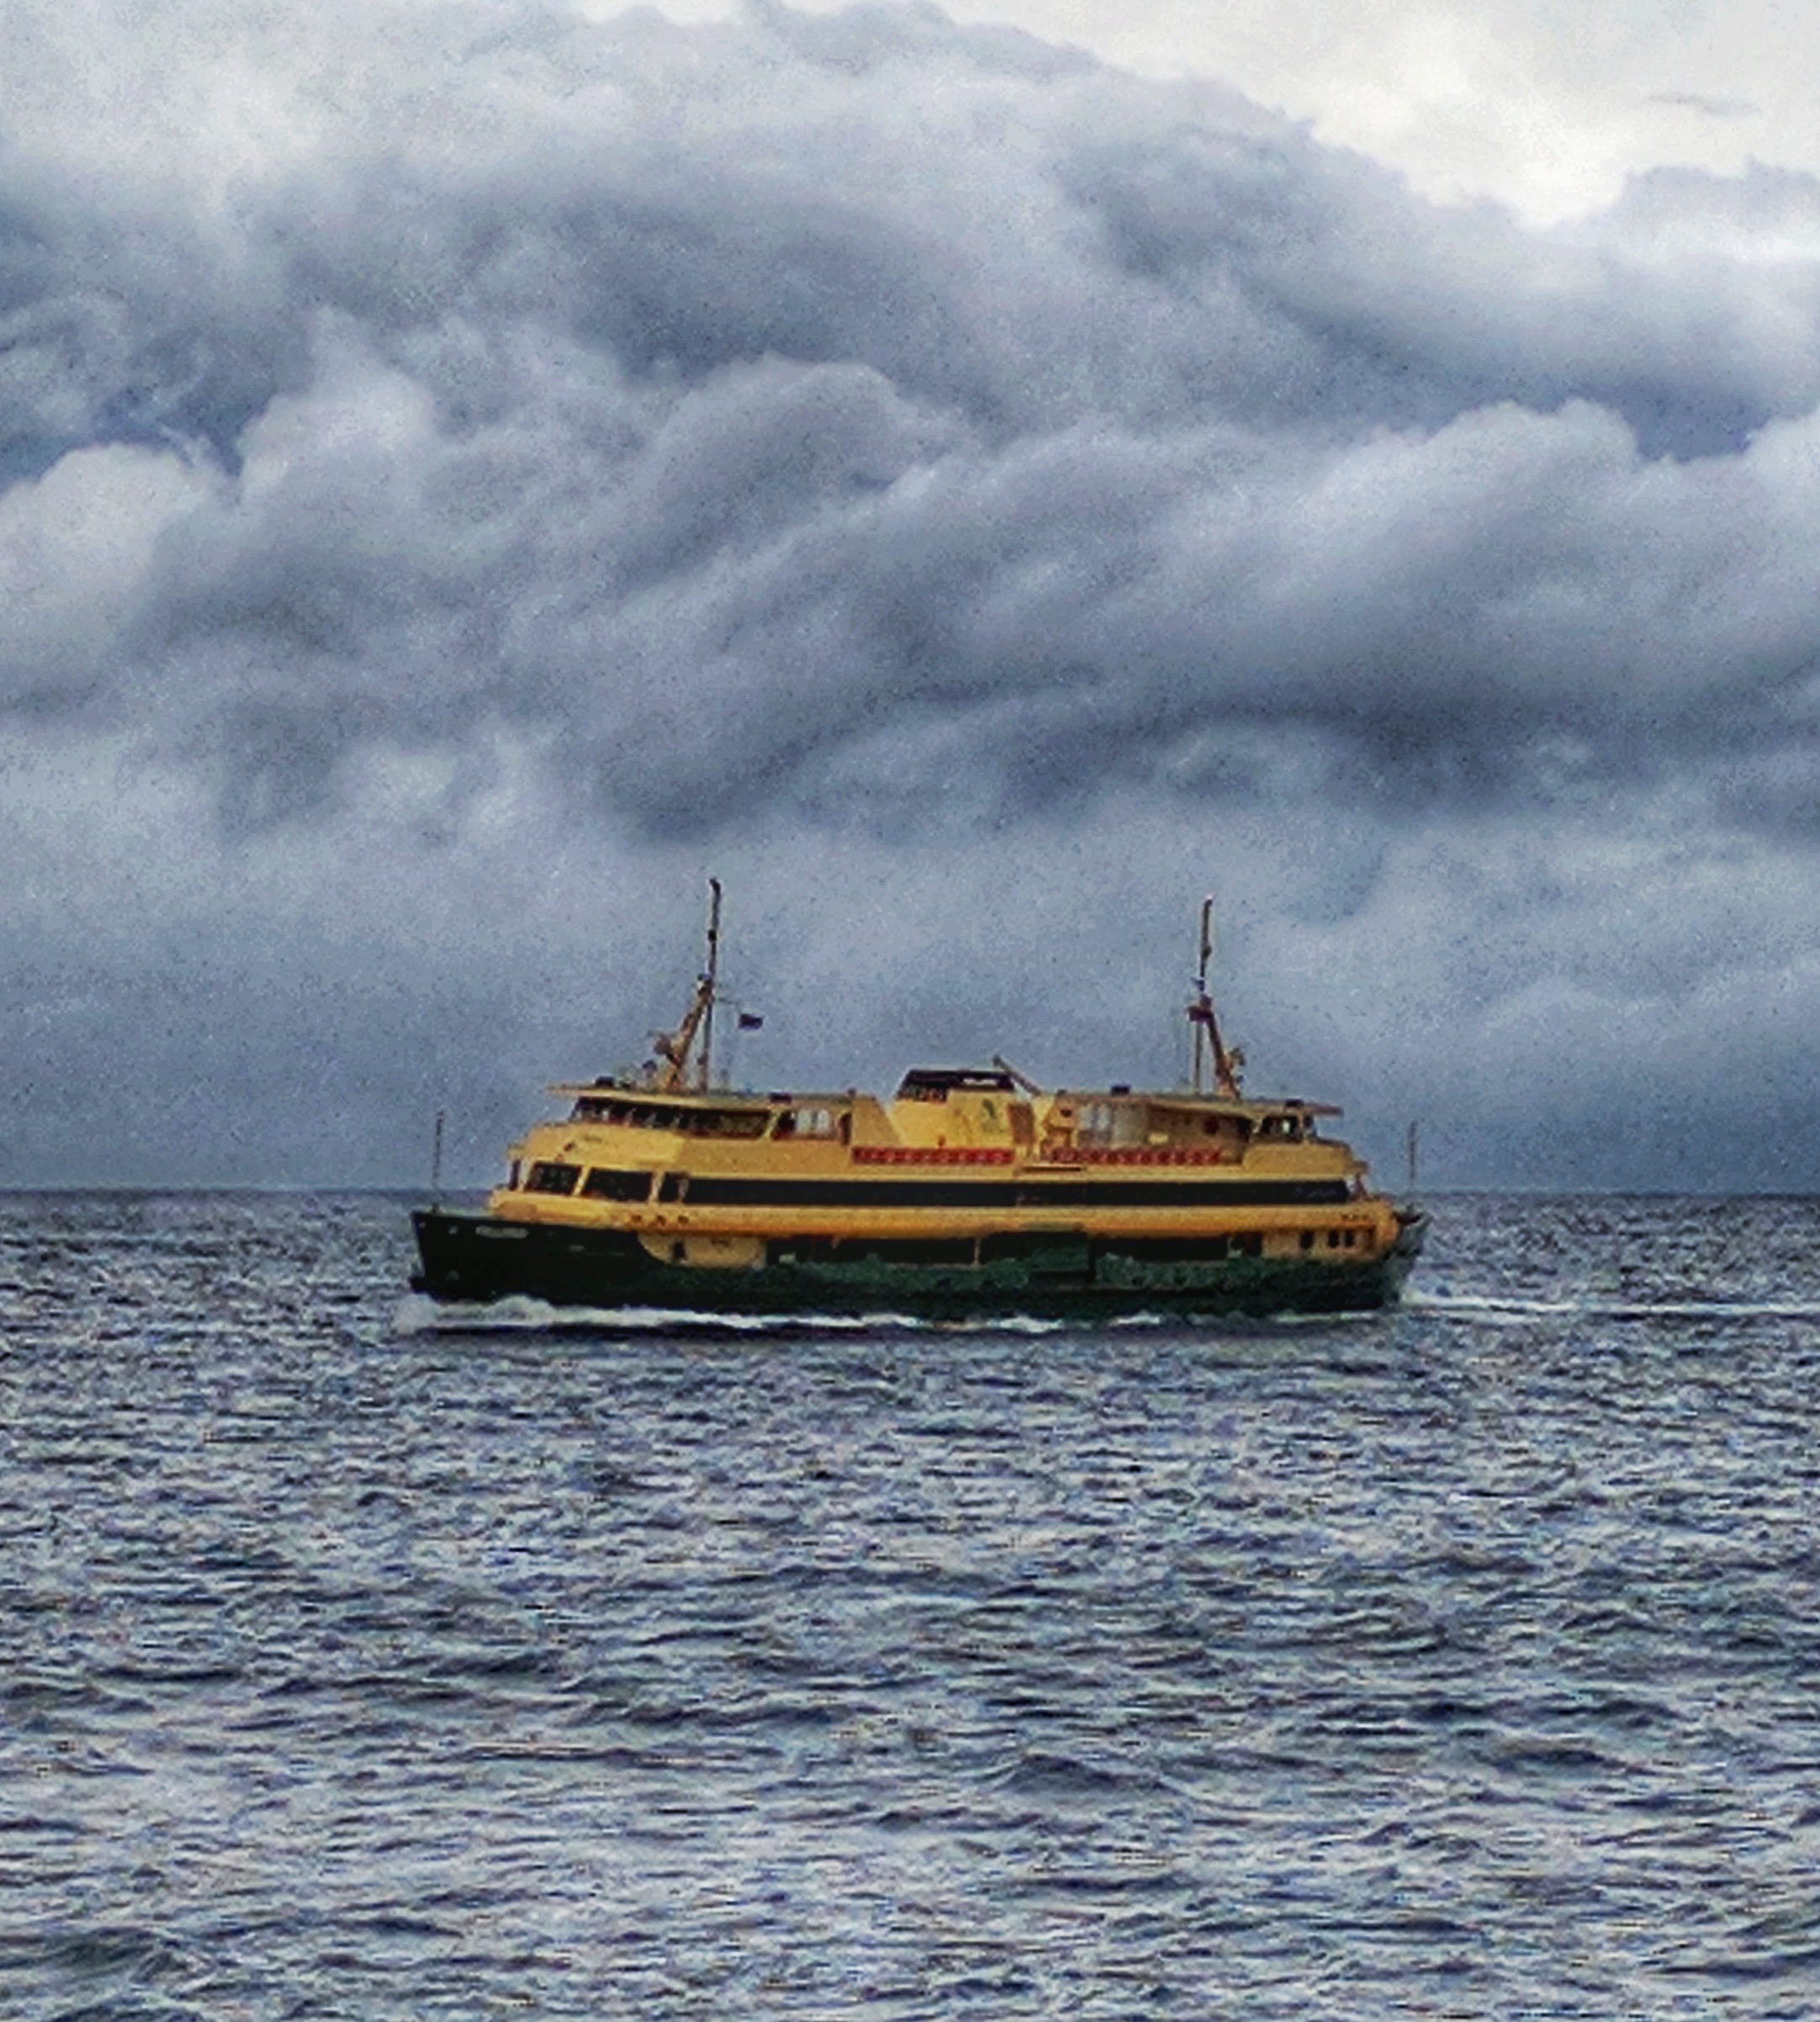 Manly Ferry crossing the Sydney Harbour heads against a cloudy background